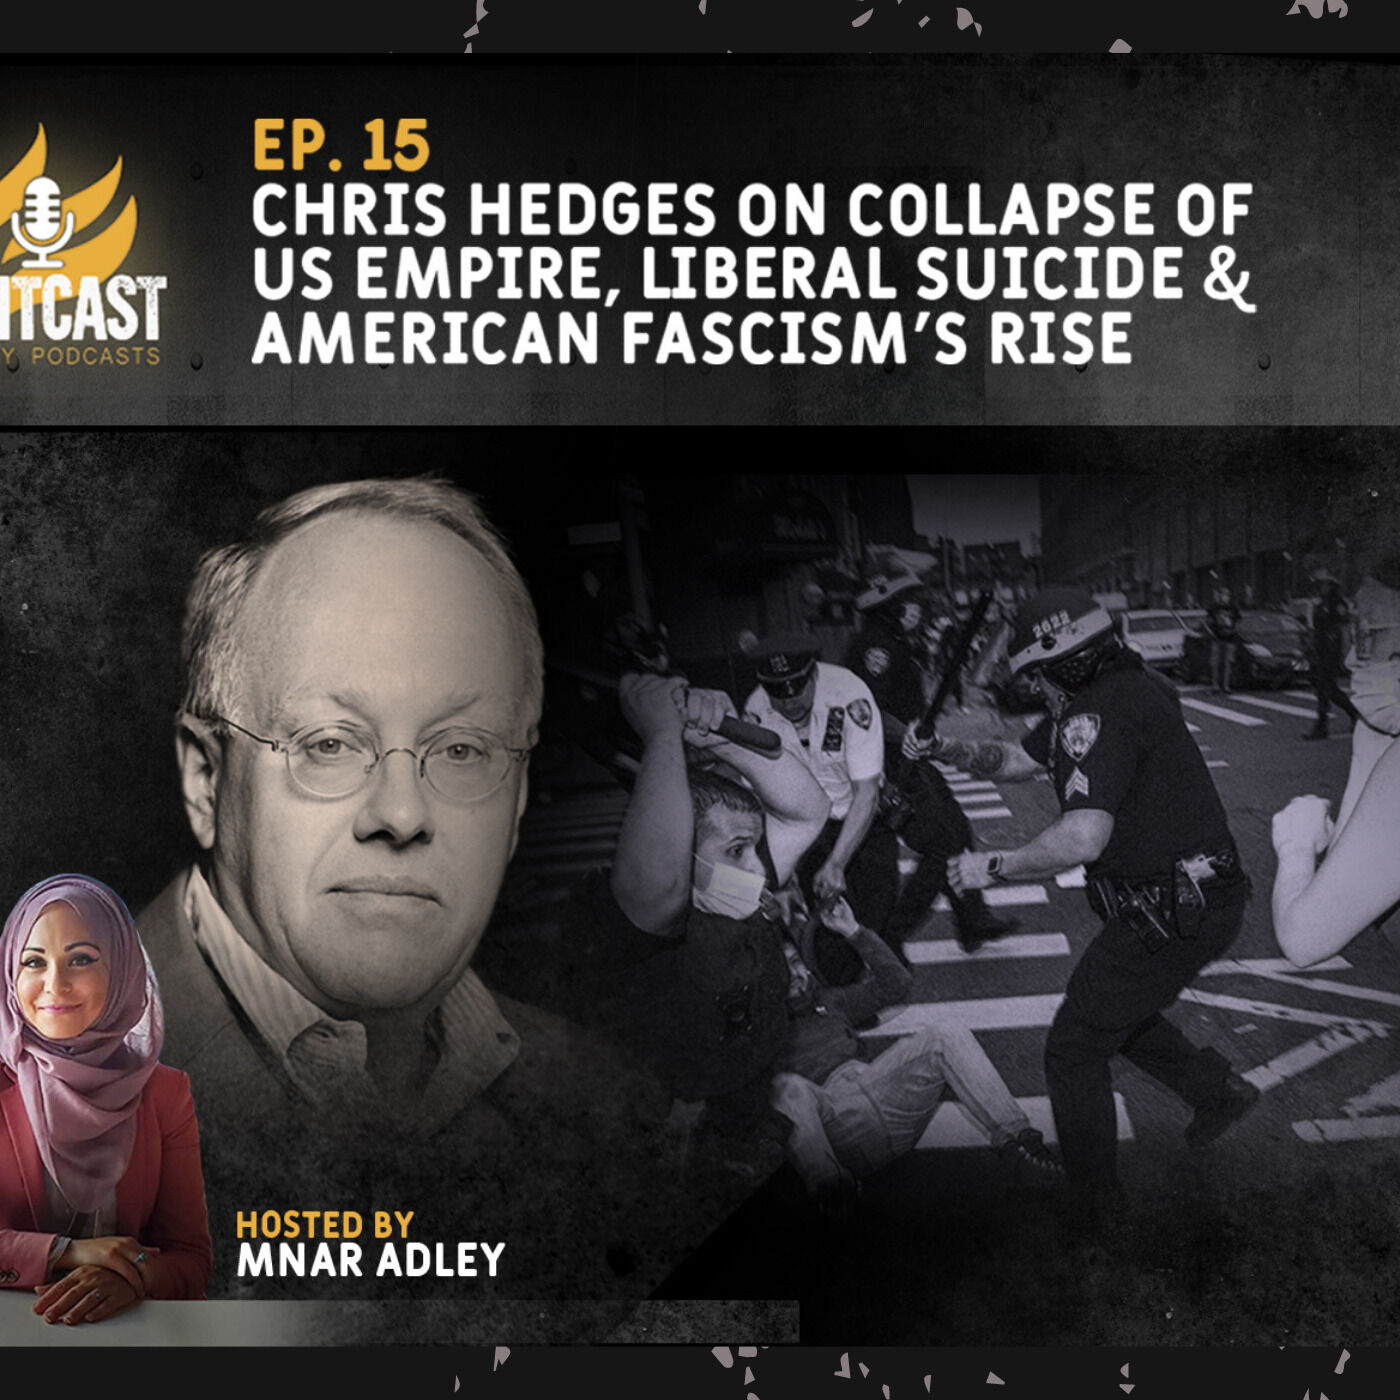 Podcast: Chris Hedges on the Collapse of US Empire, Liberal Suicide and the Rise of Christian Fascism